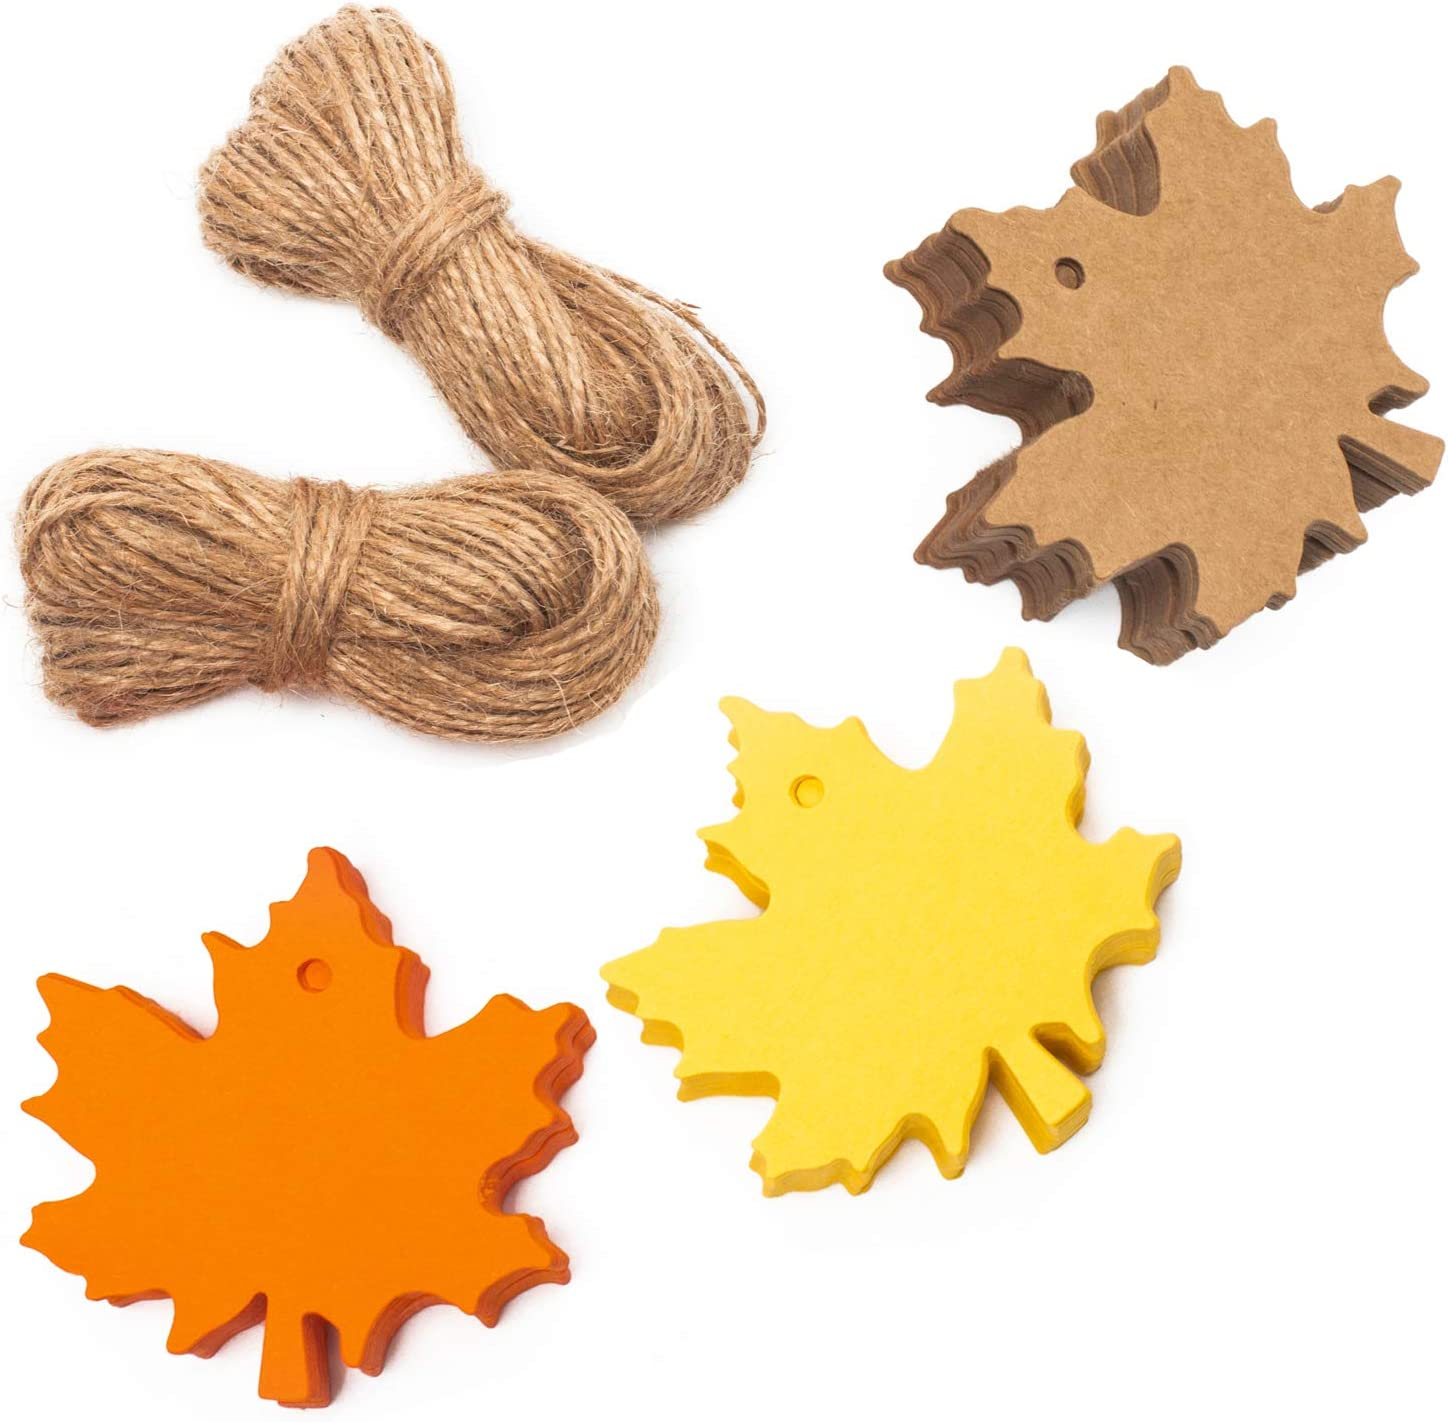 Whaline 150 Pcs Fall Gift Tags Maple Leaves Favor Paper Tags Favor with 131 Feet Natural Jute Twine for Autumn, Thanksgiving, Wedding, Craft Presents (3 Colors)